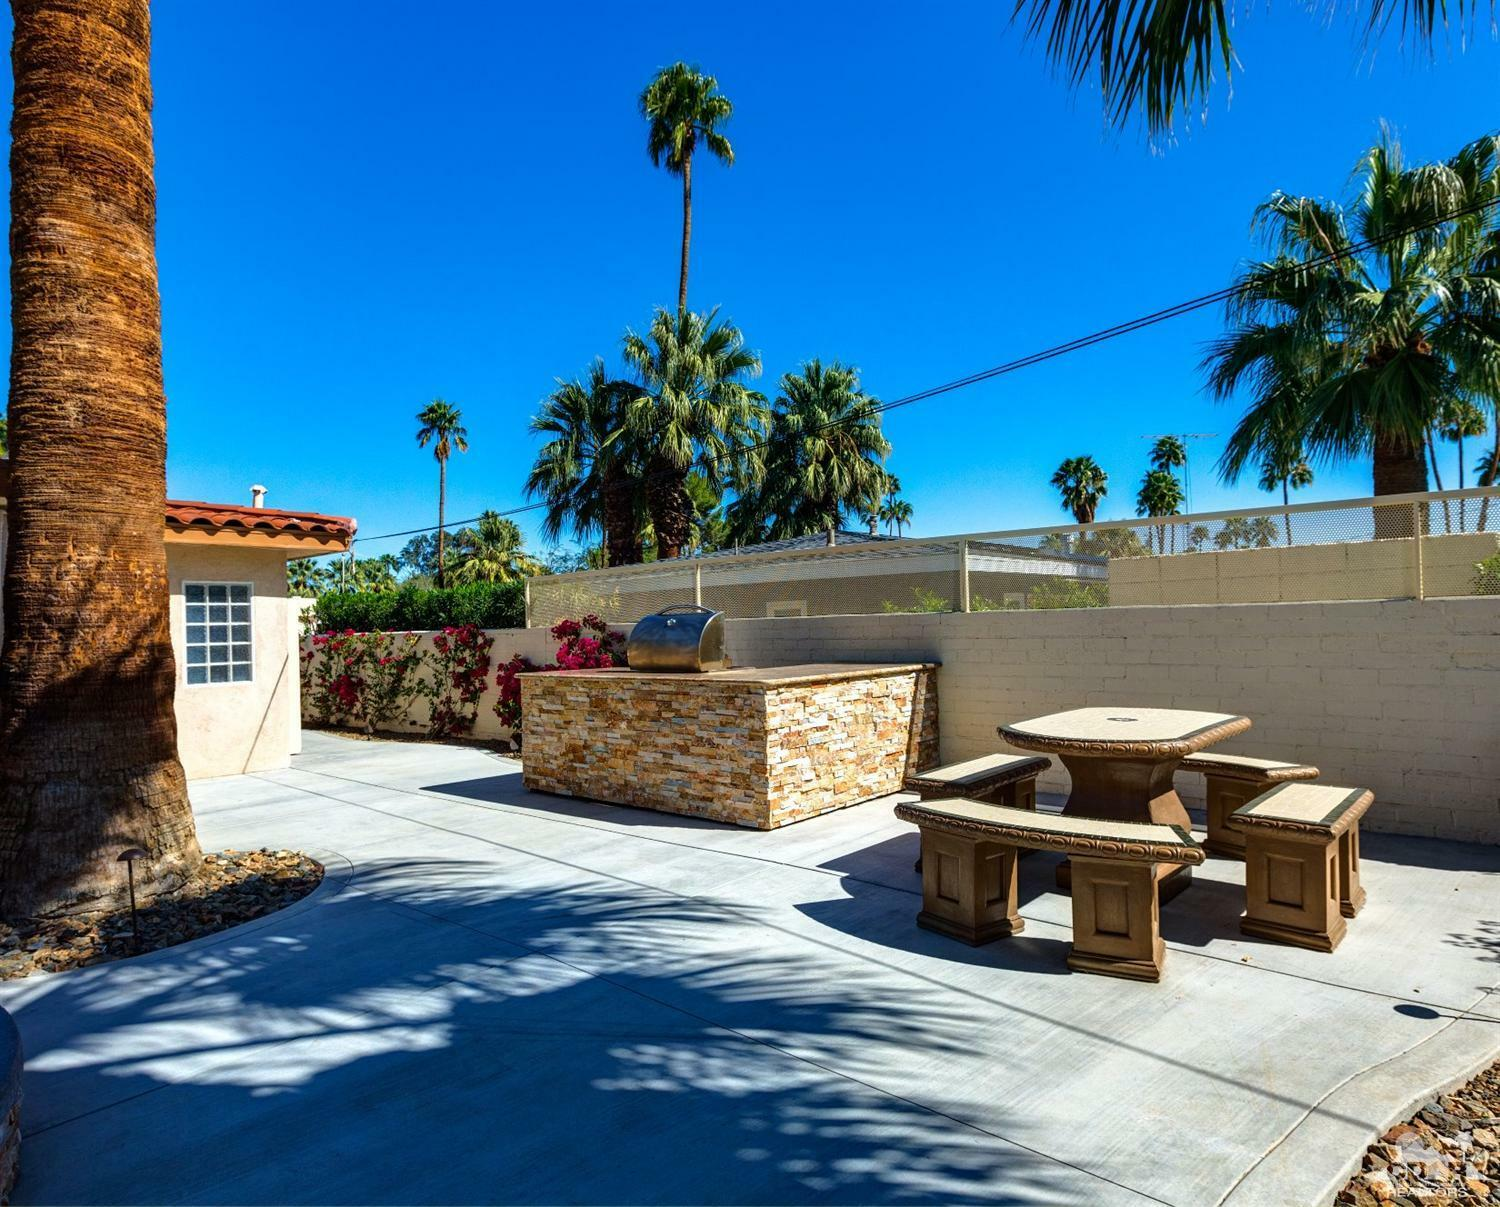 1057 East Marshall Way, Palm Springs, CA - USA (photo 5)